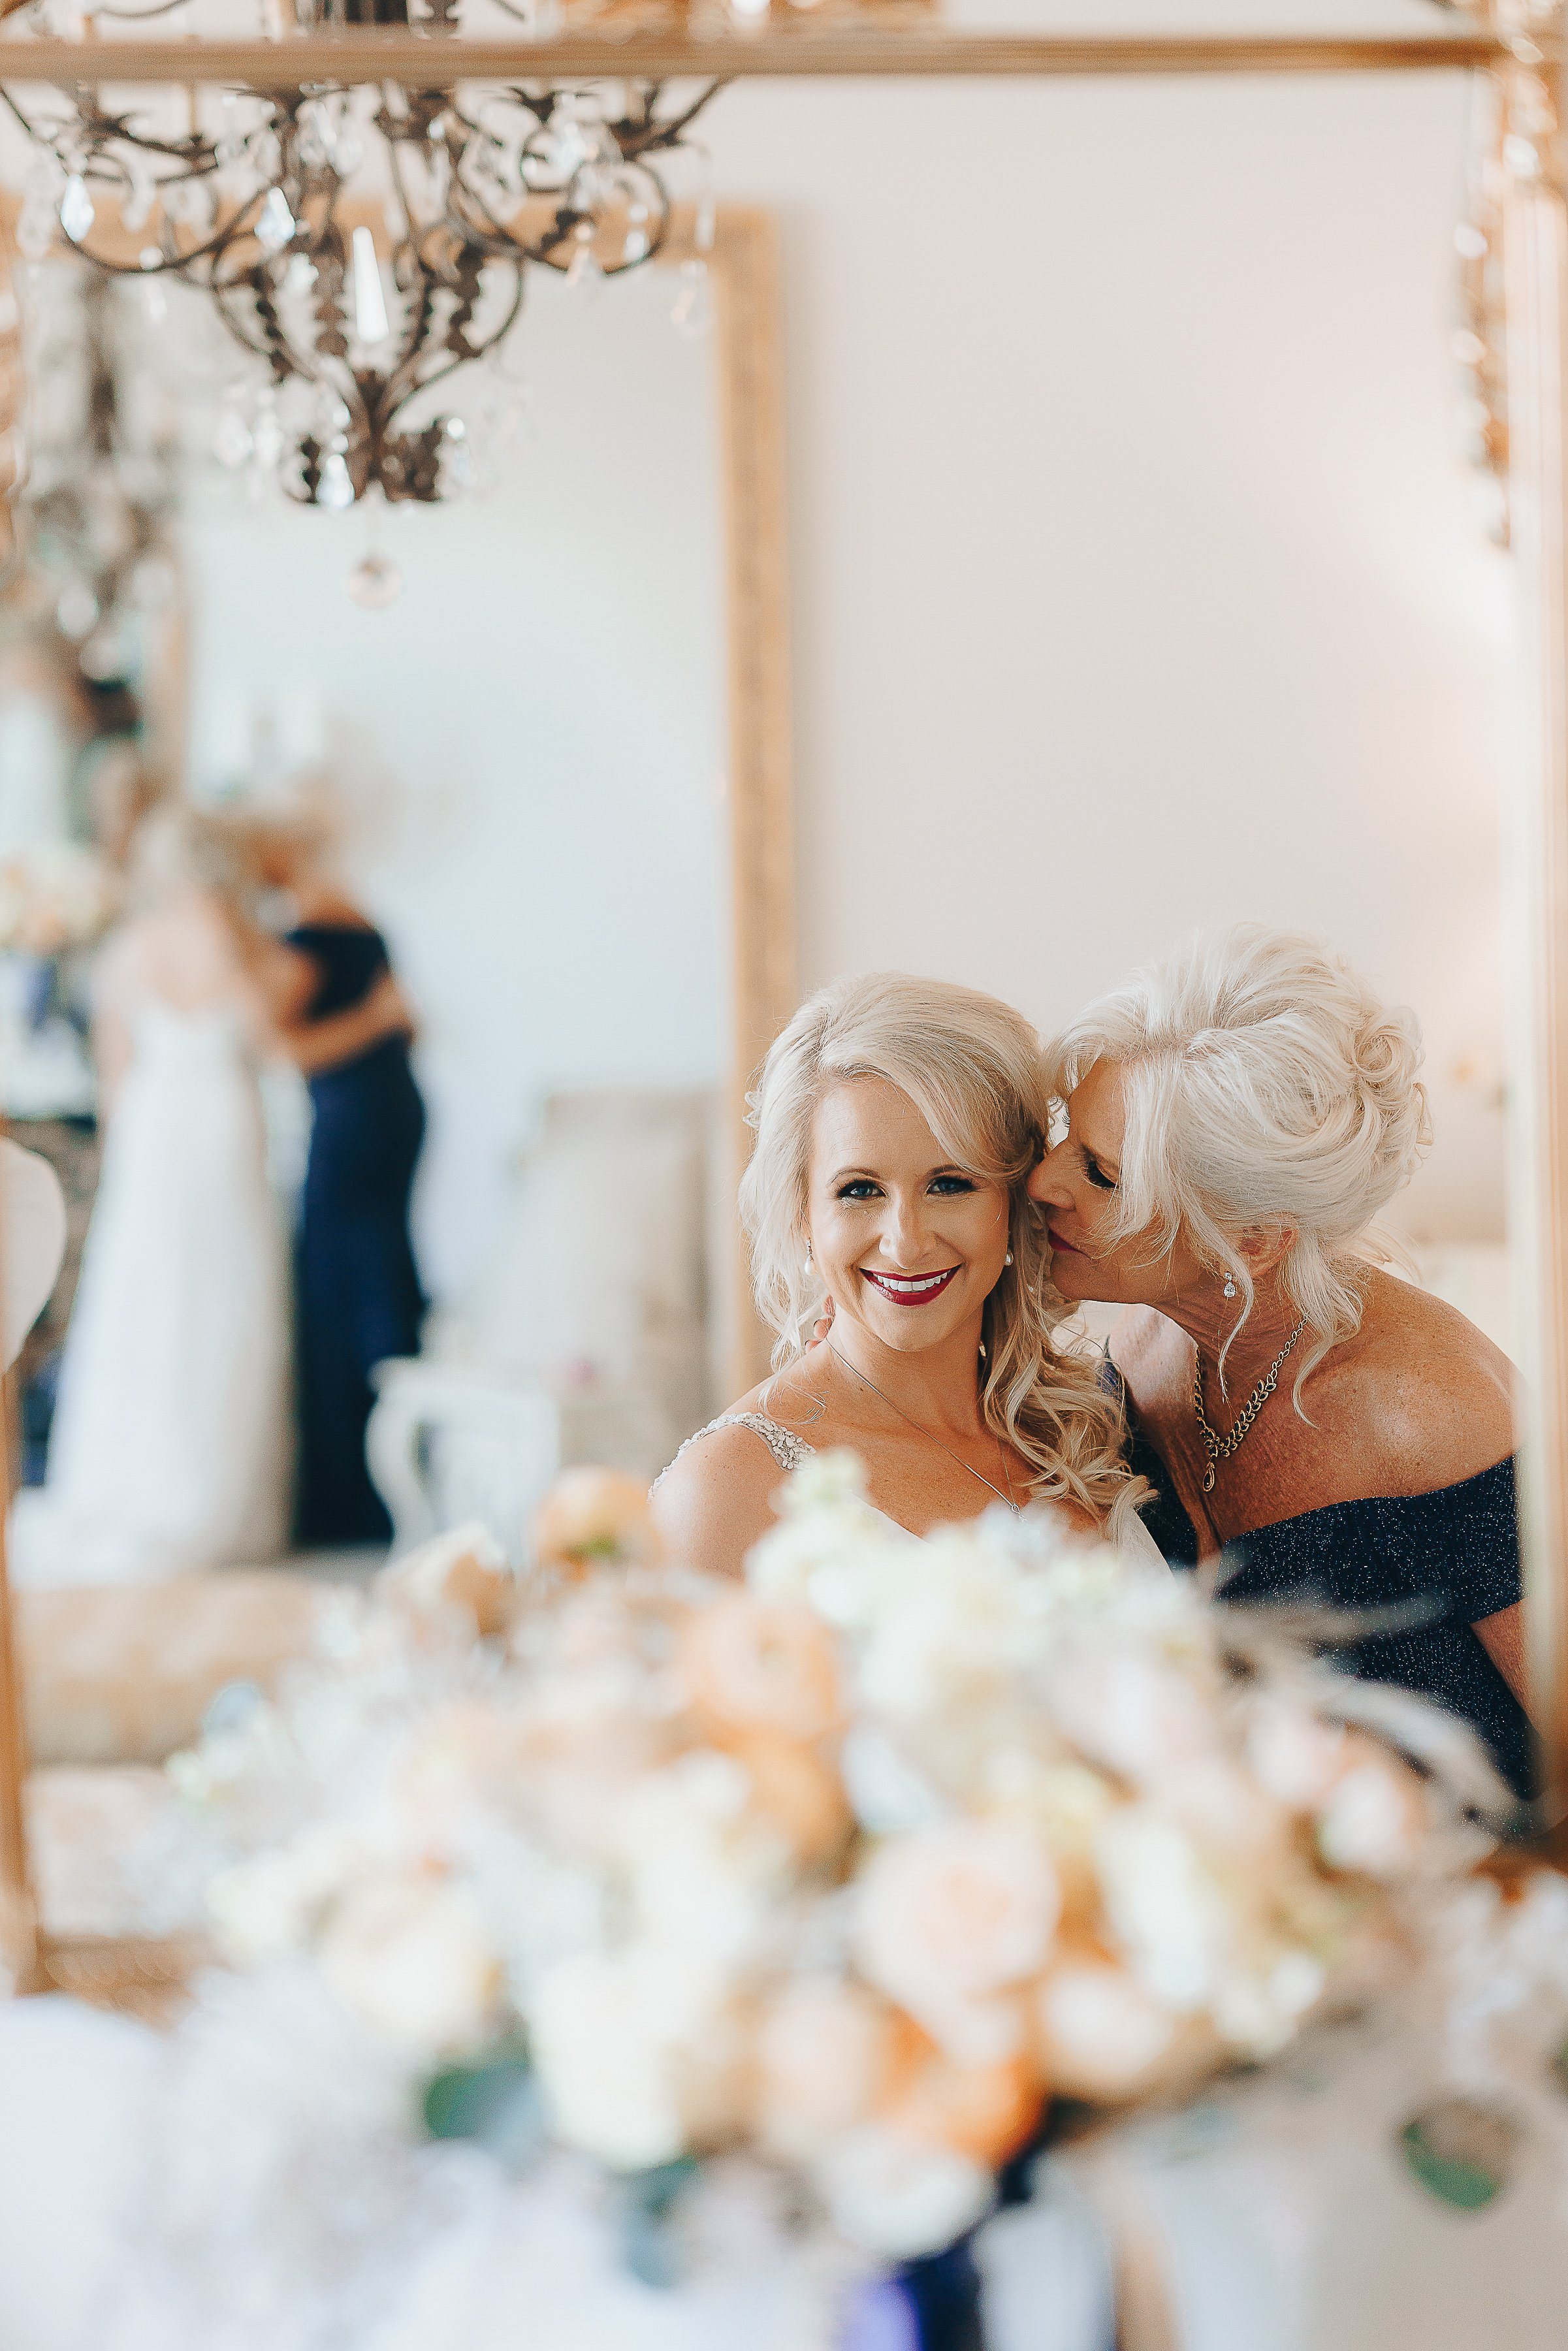 Mother of the Bride kissing the bride on the cheek.